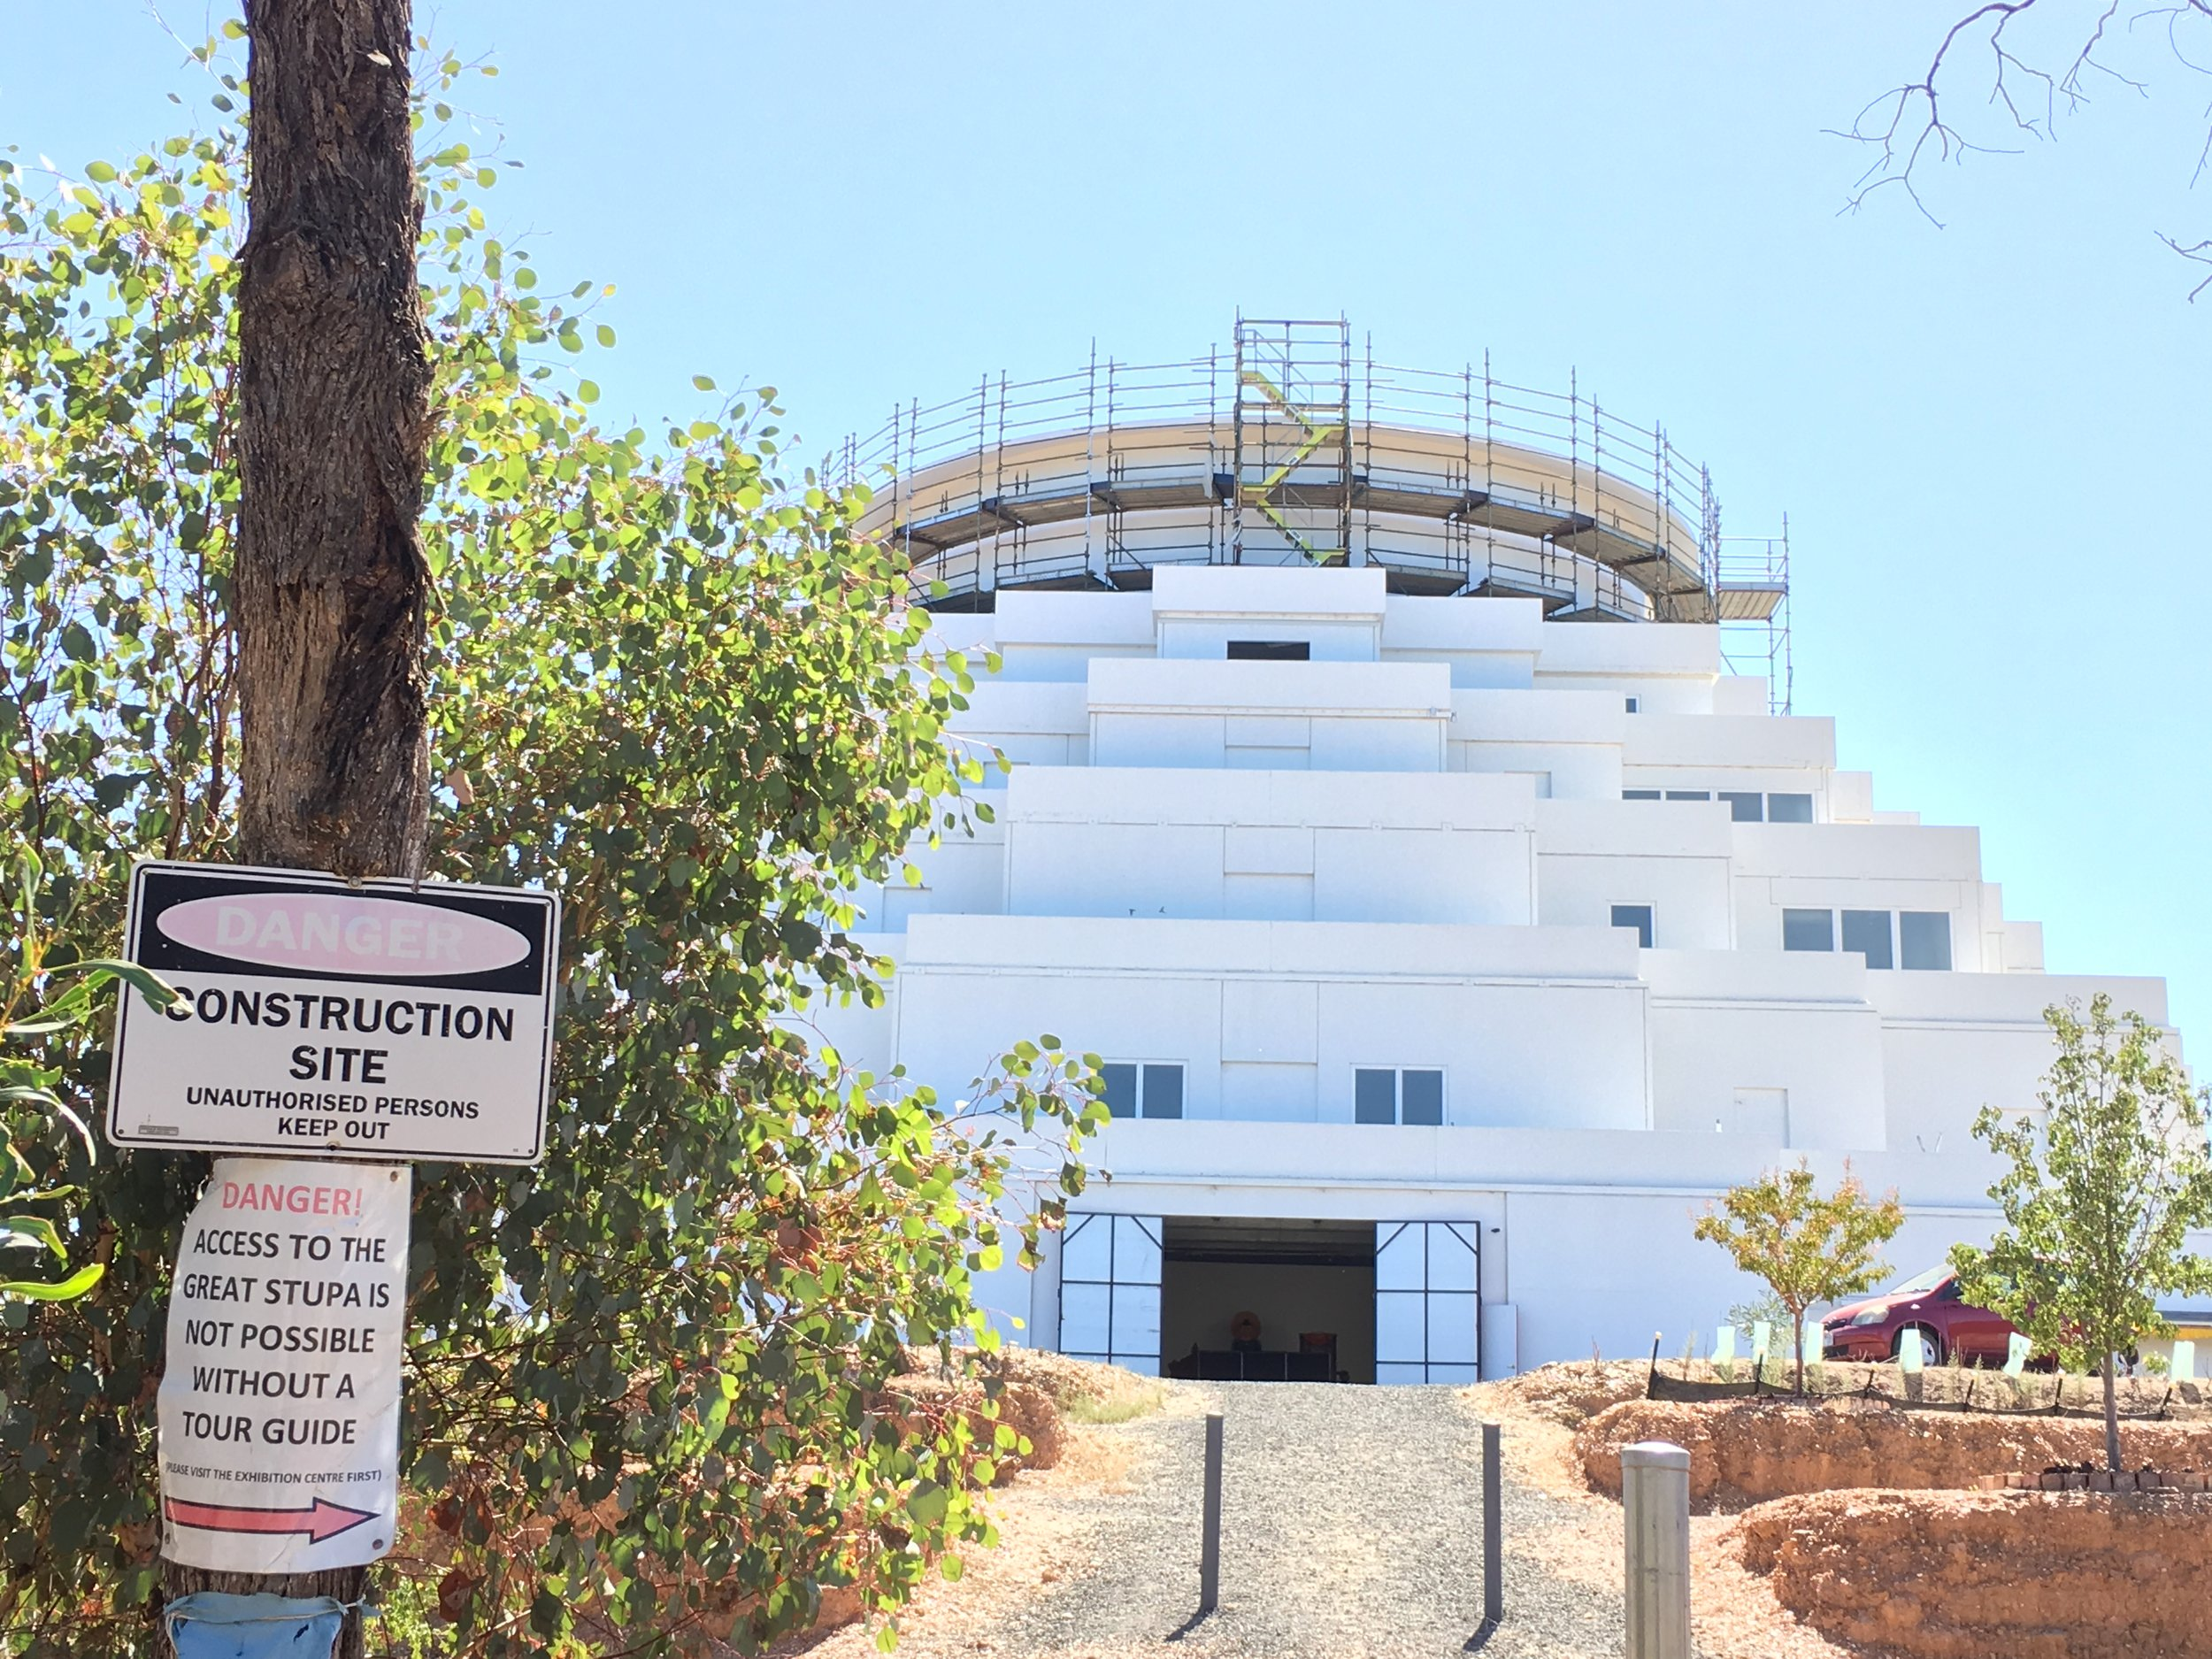 Under Construction: the Great Stupa of Universal Compassion - photo by Catherine Schieve